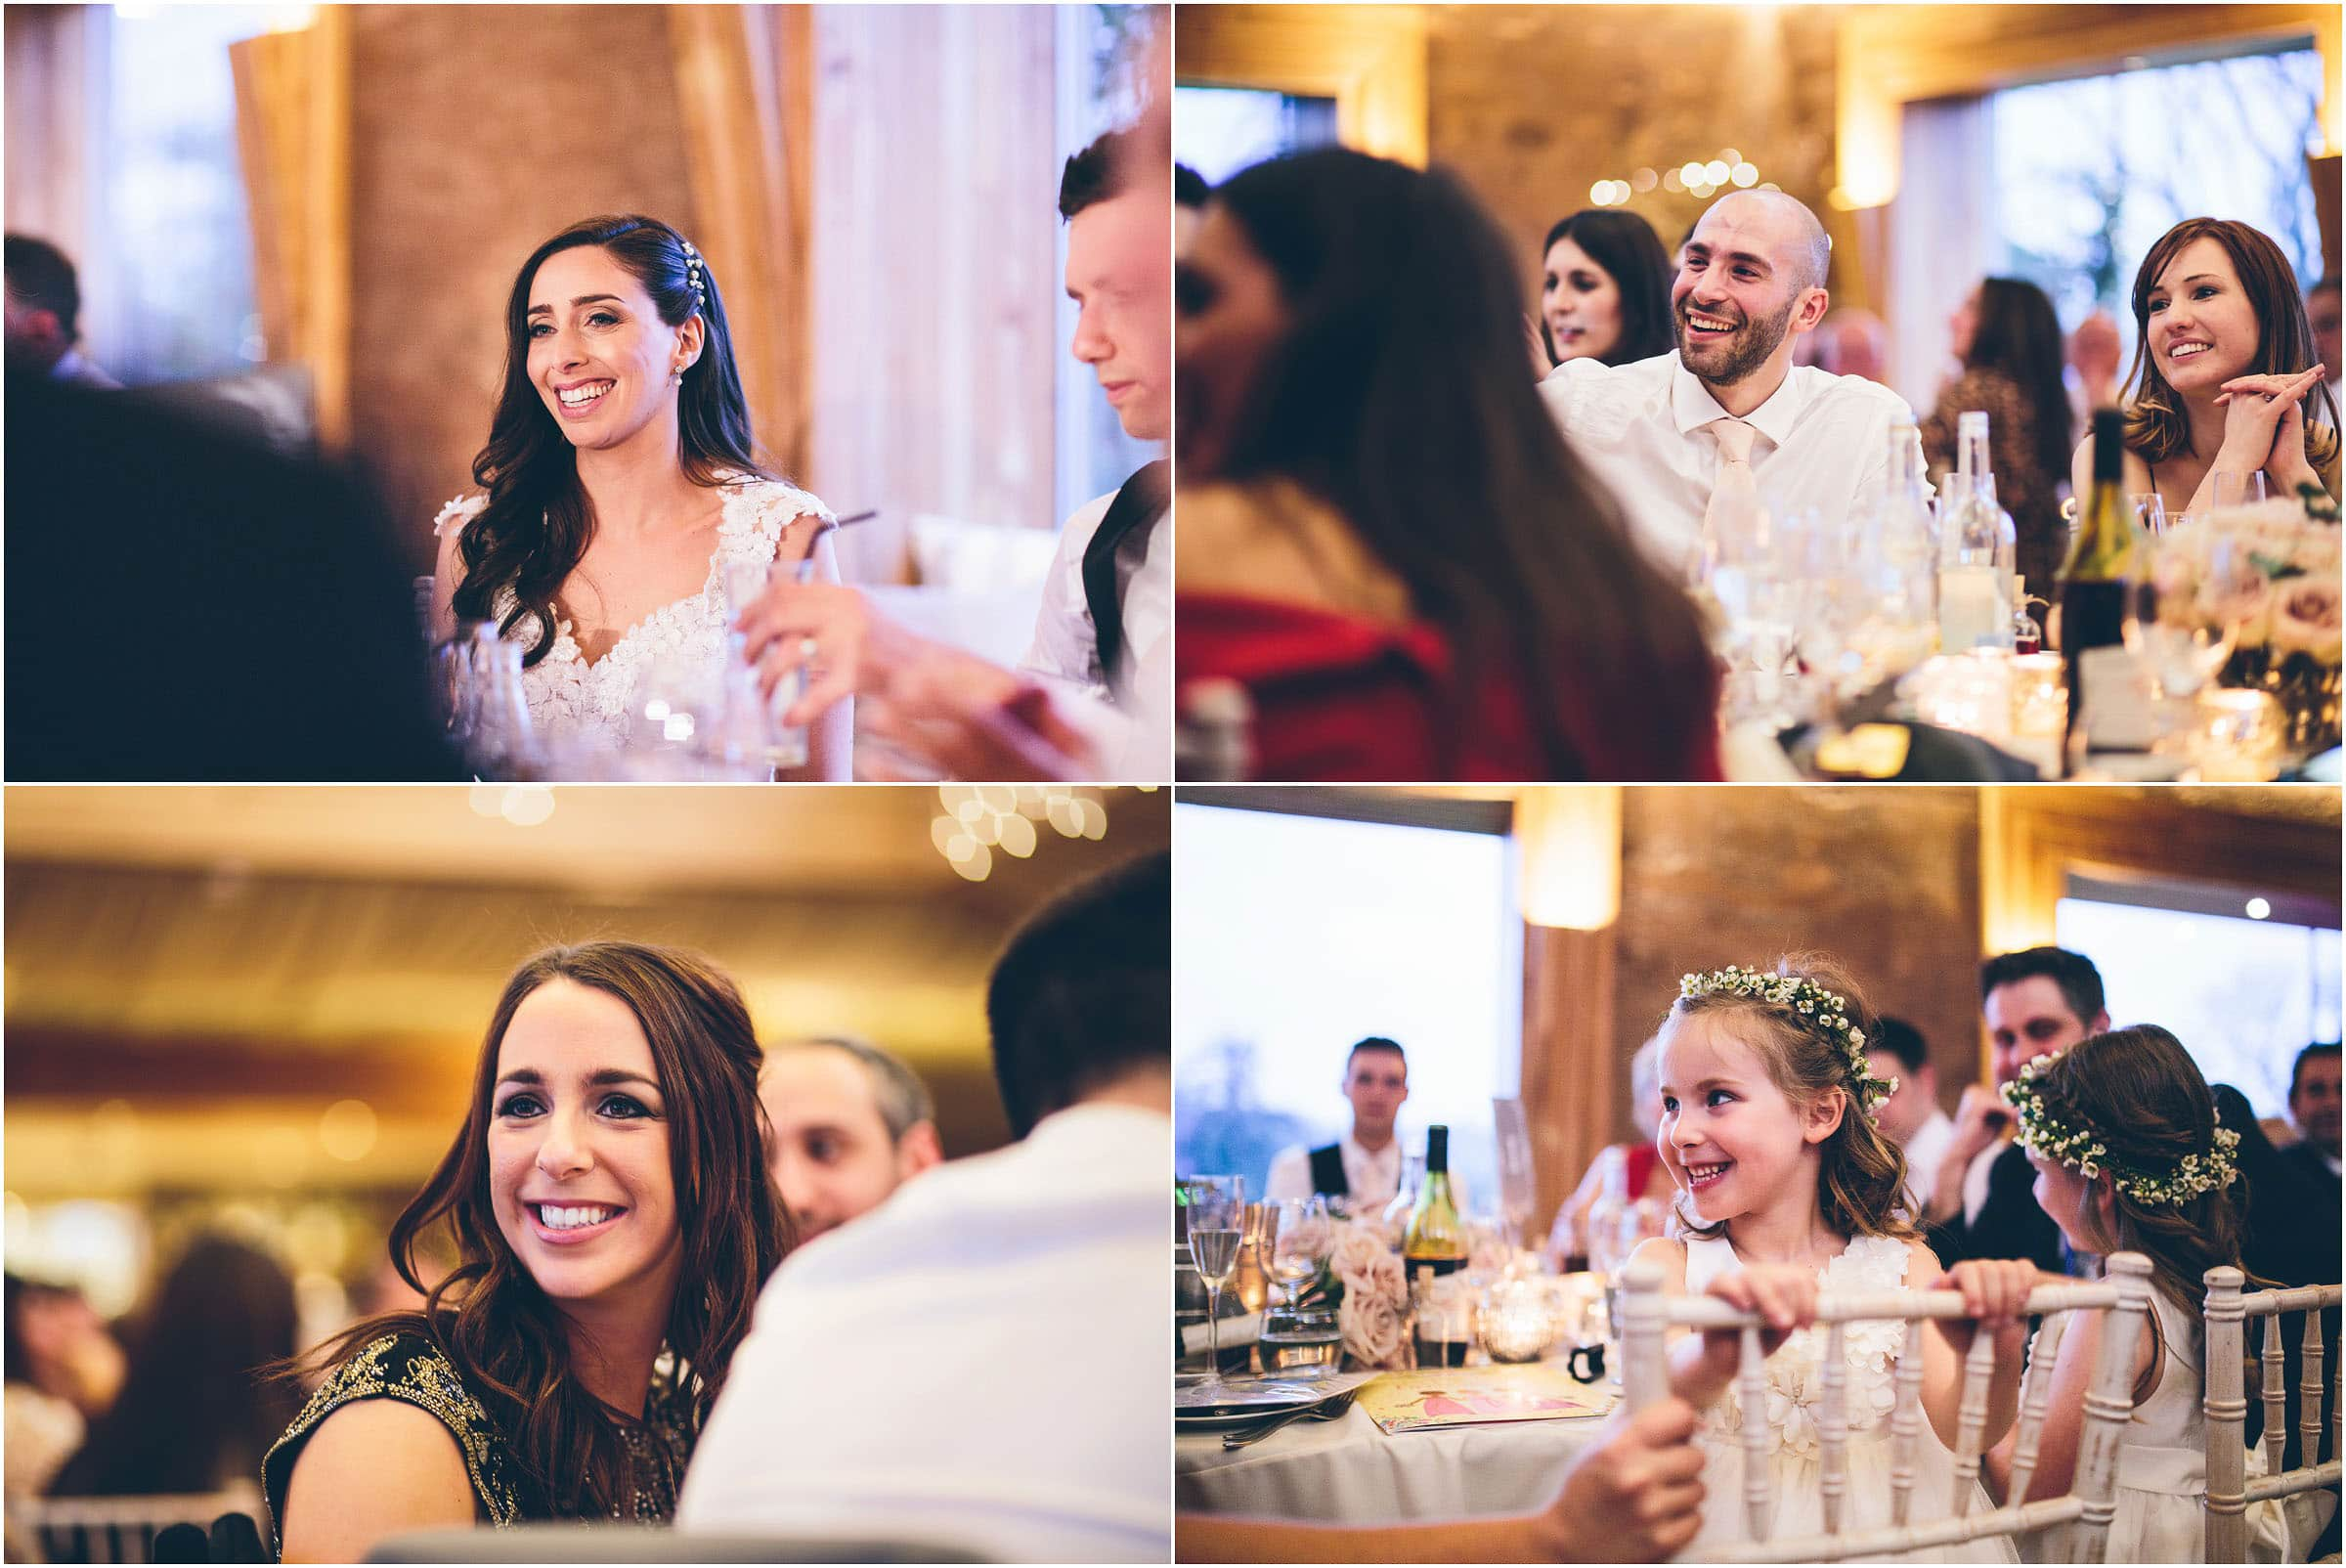 Elmore_Court_Wedding_Photography_0096